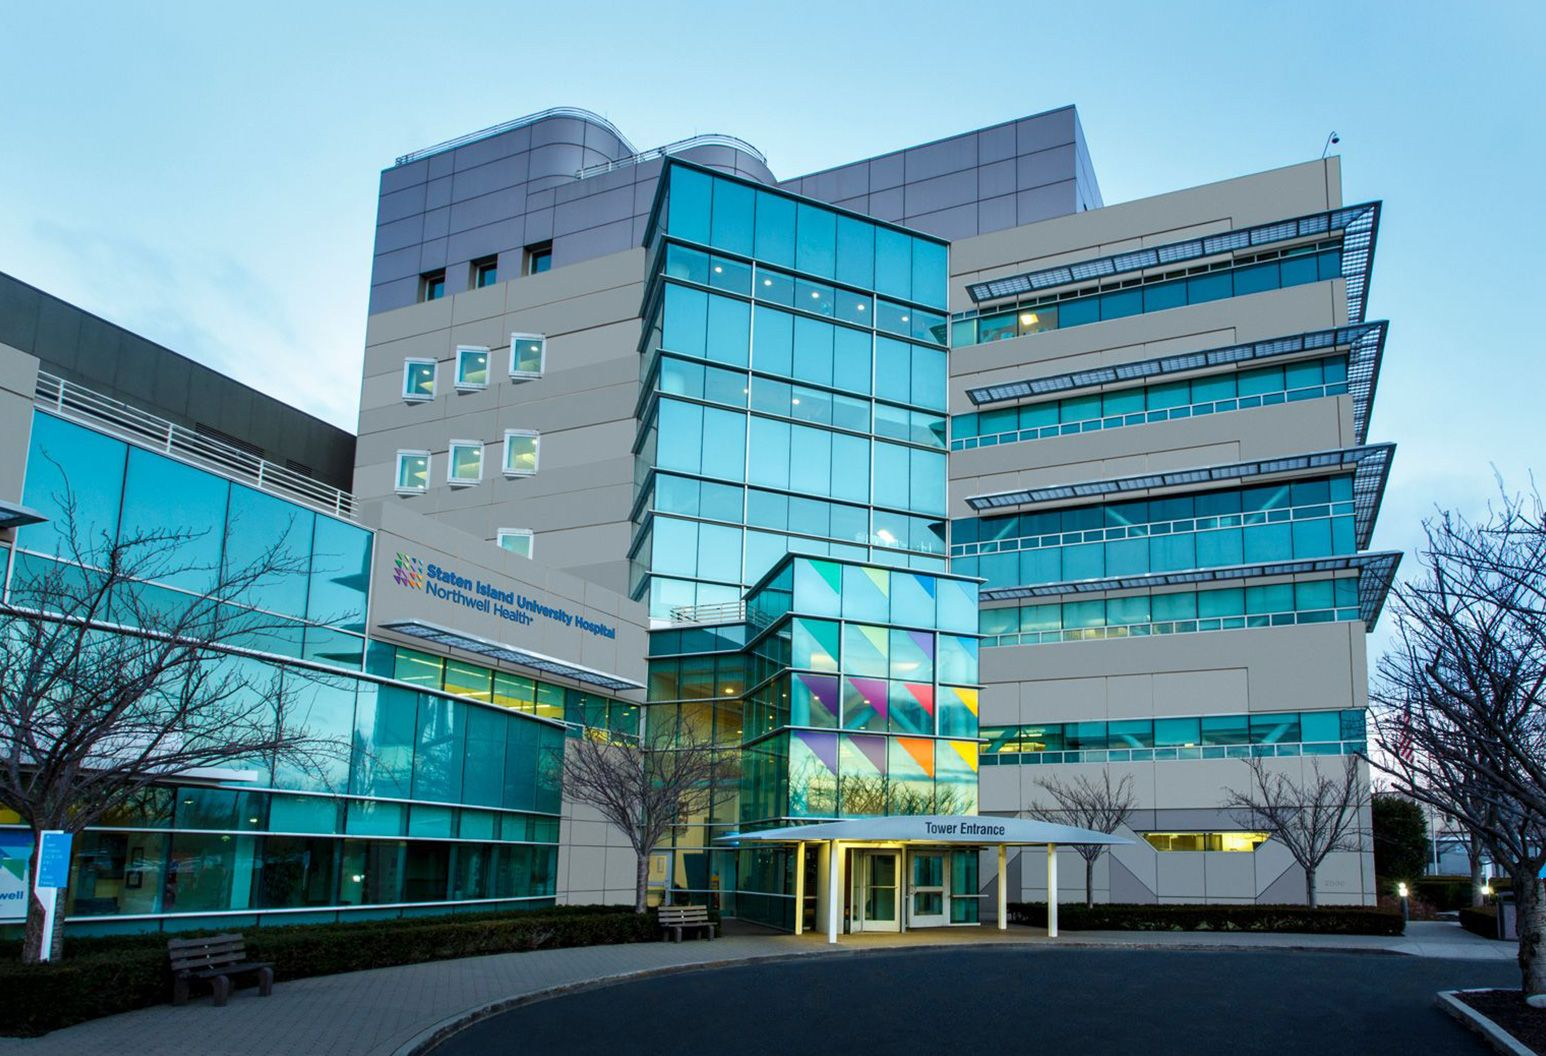 Exterior picture of Staten Island University Hospital, photographed in the early evening with a dark sky and reflection of the trees in the windows